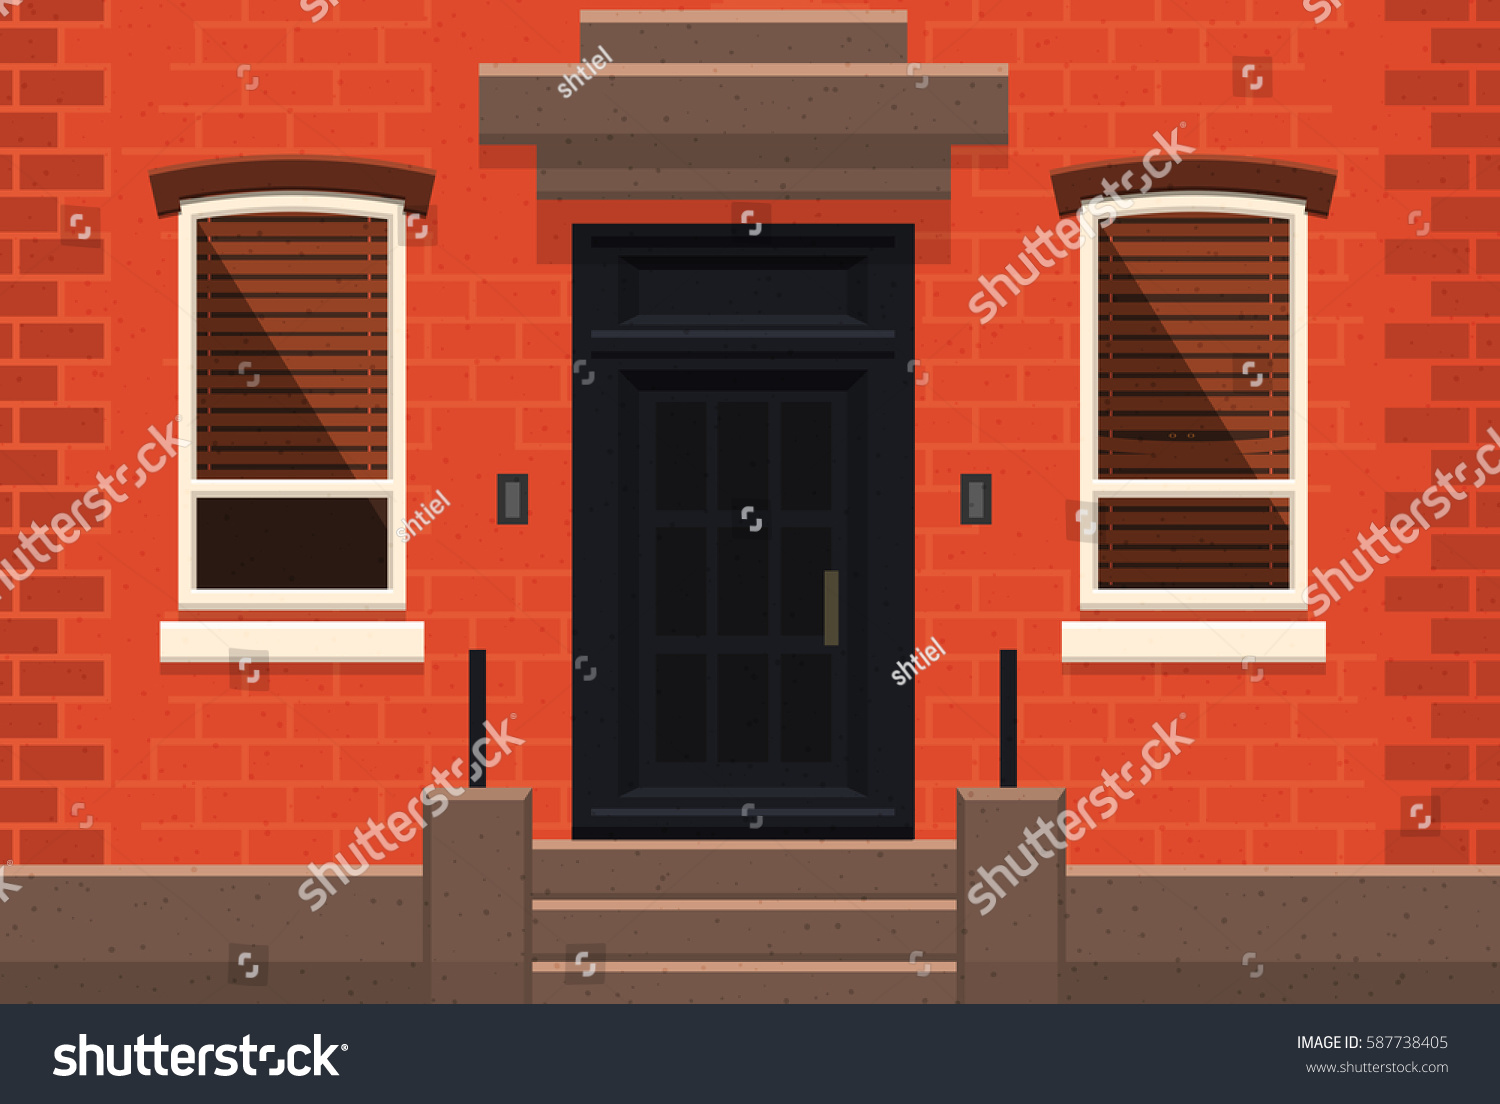 Brooklyn Red Brick Apartment Building Flat Stock Vector 587738405